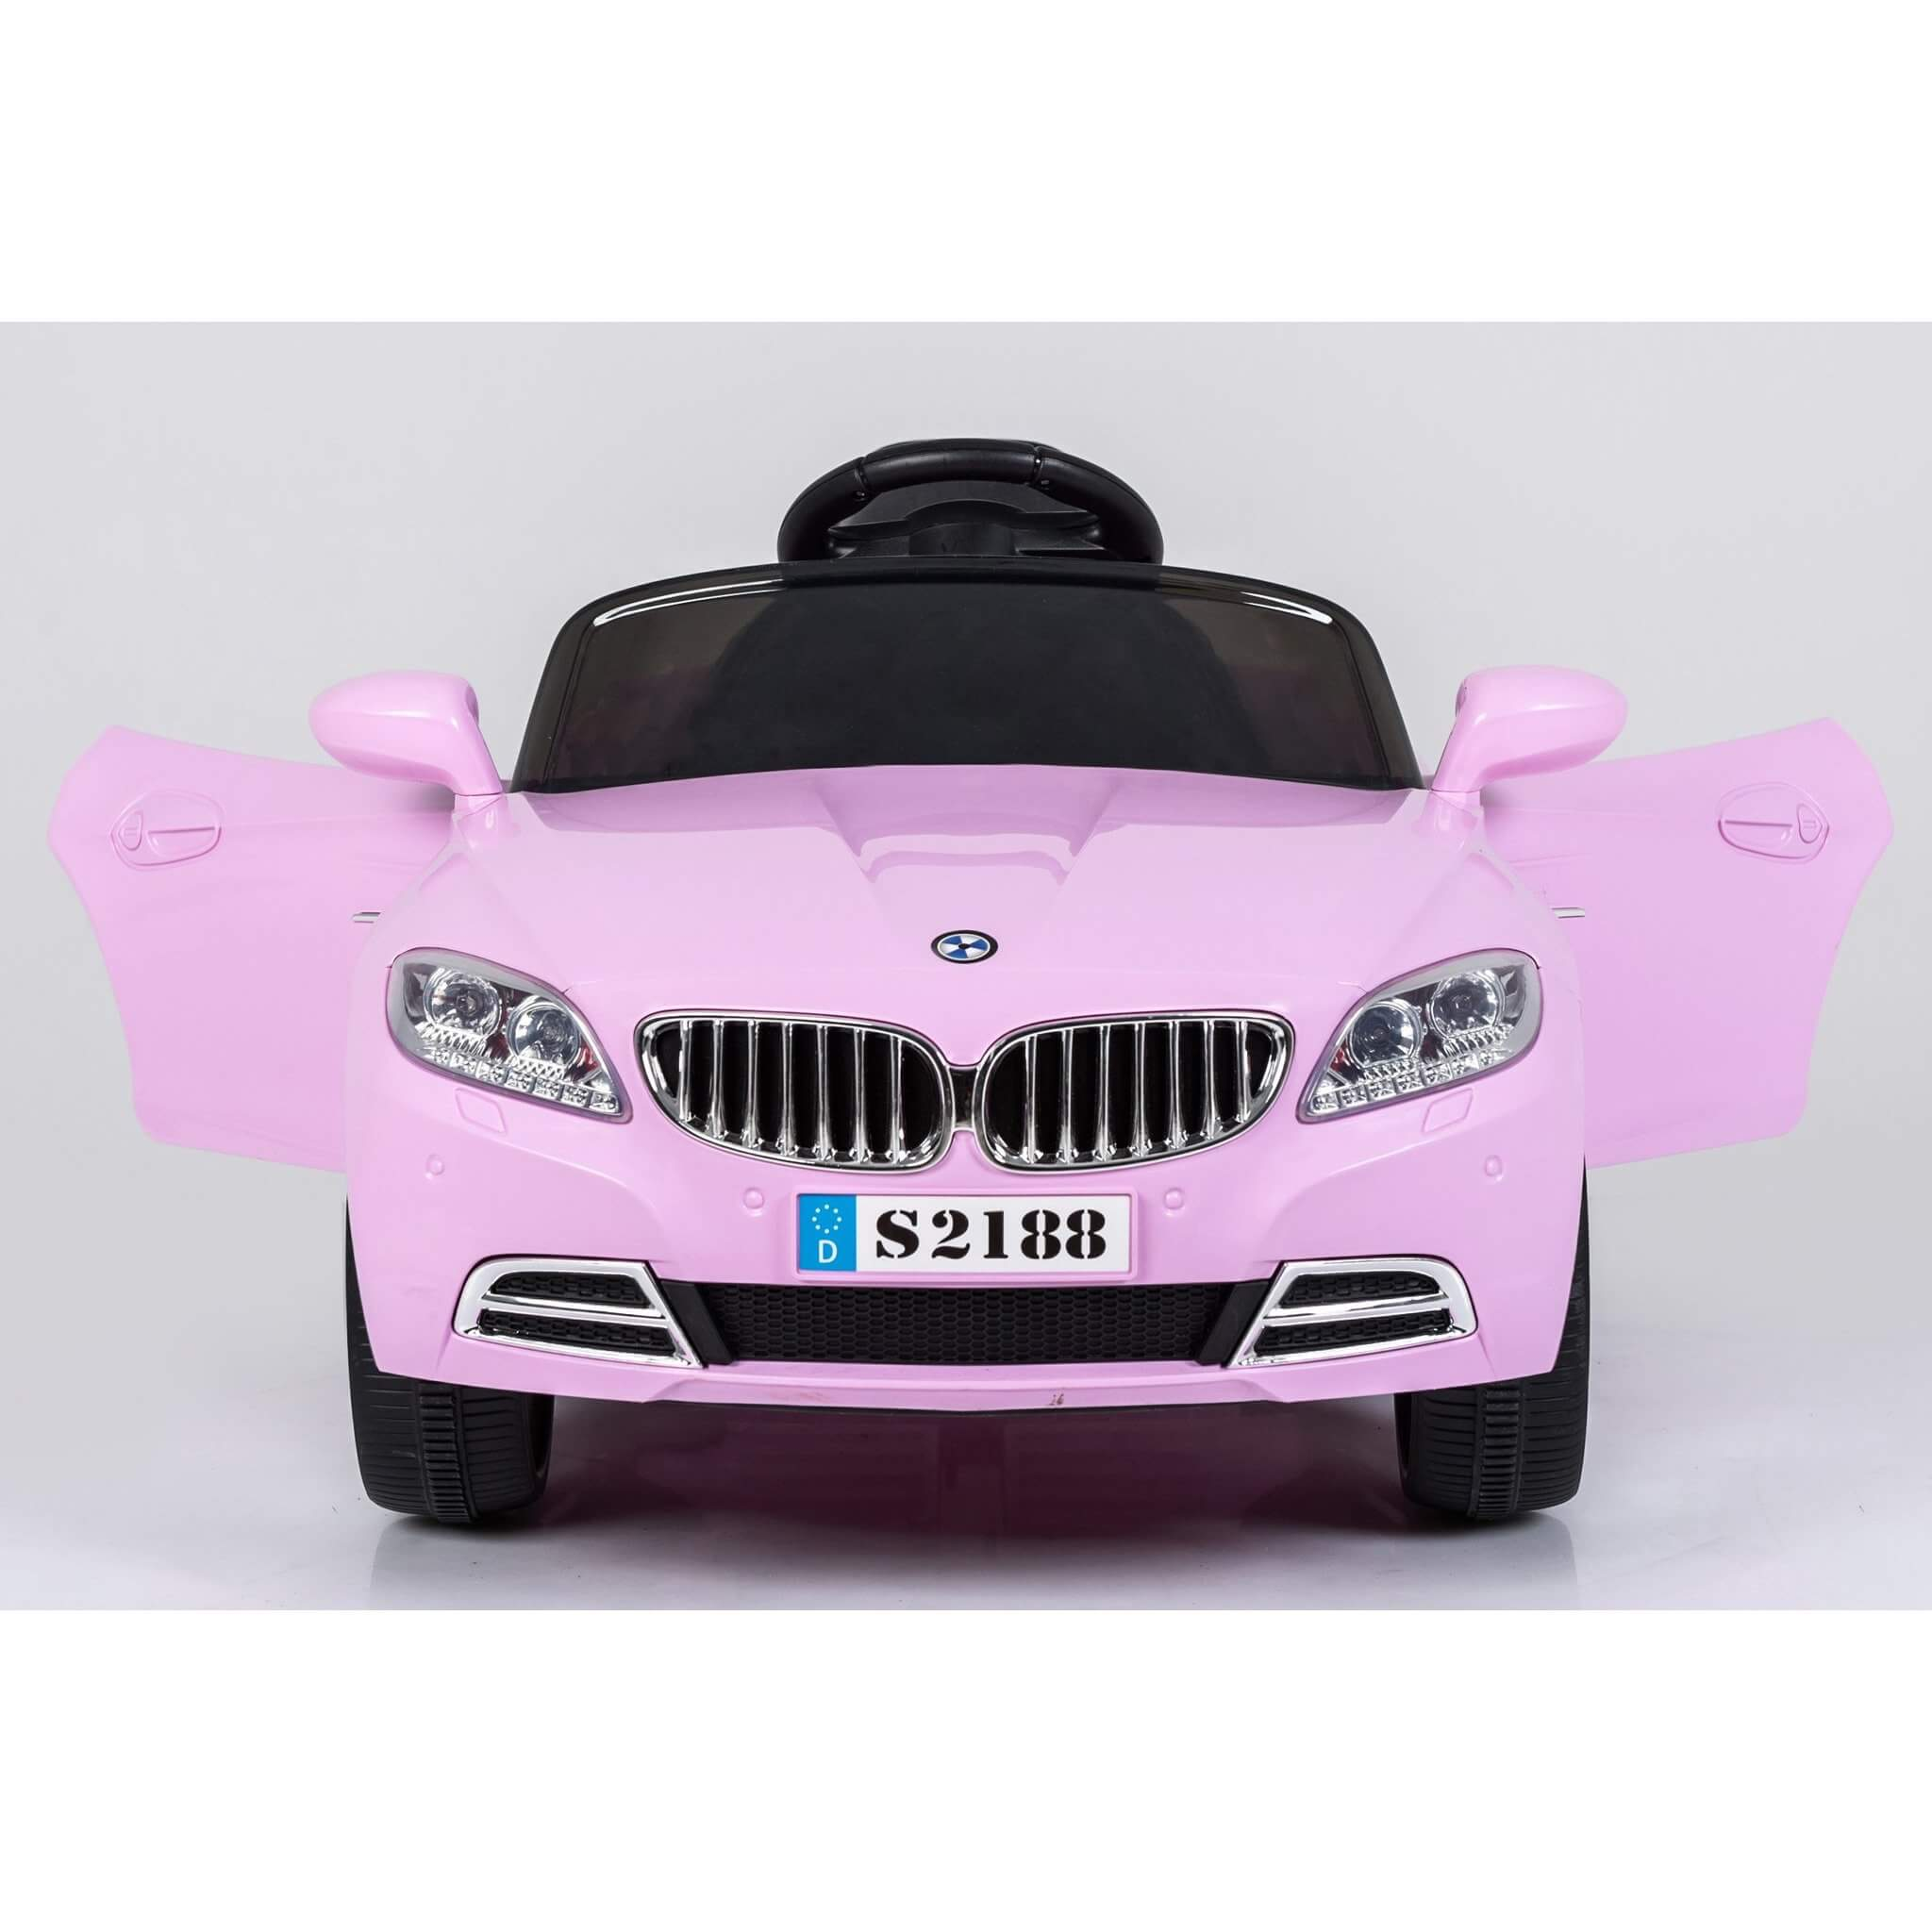 RAF ELECTRIC RIDE ON STREET RACER BMW STYLE FOR KIDS - rafplay